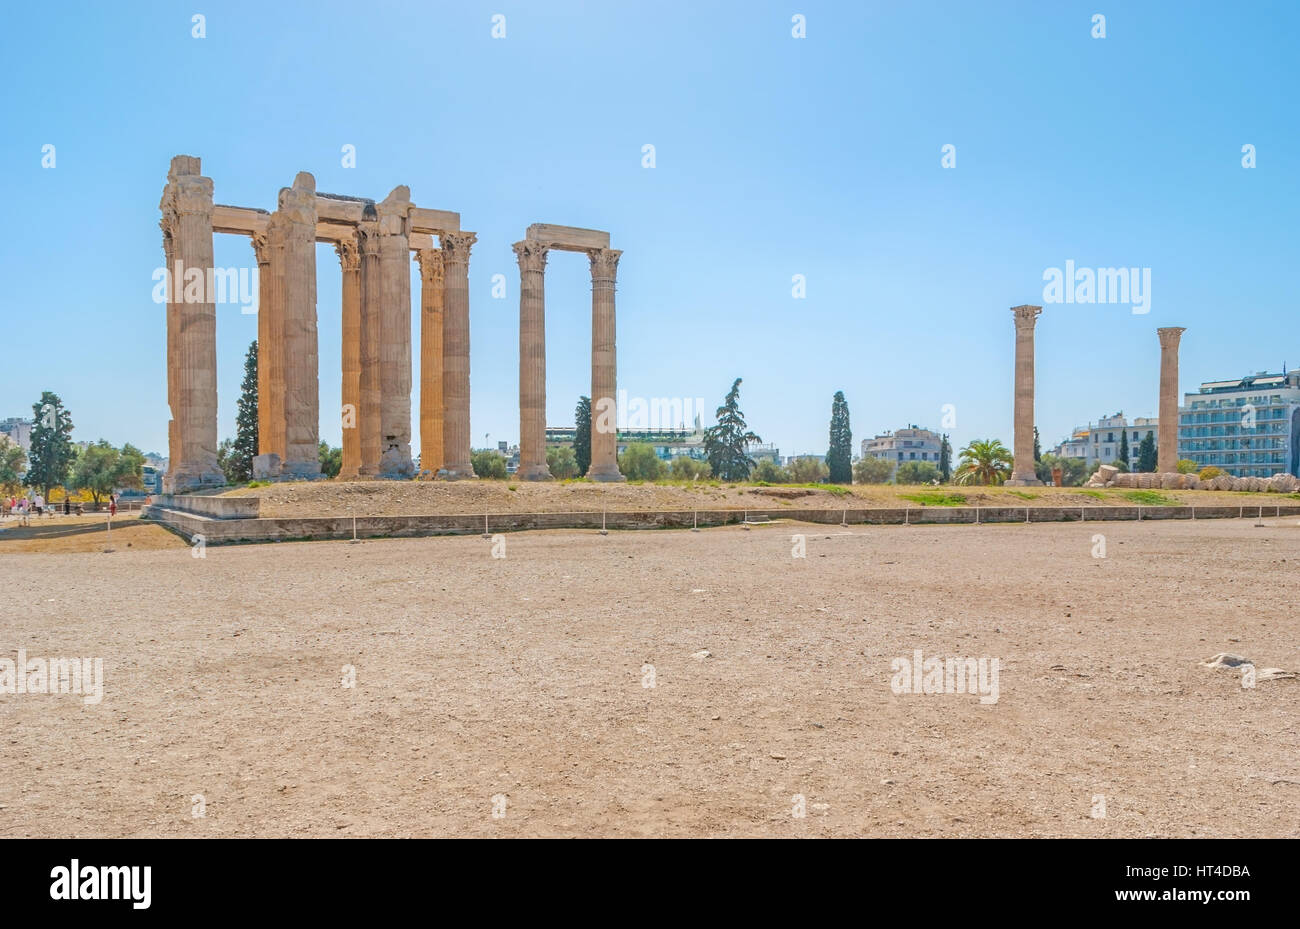 The archeological site of the Temple of Olympian Zeus with preserved colonnades, Athens, Greece - Stock Image